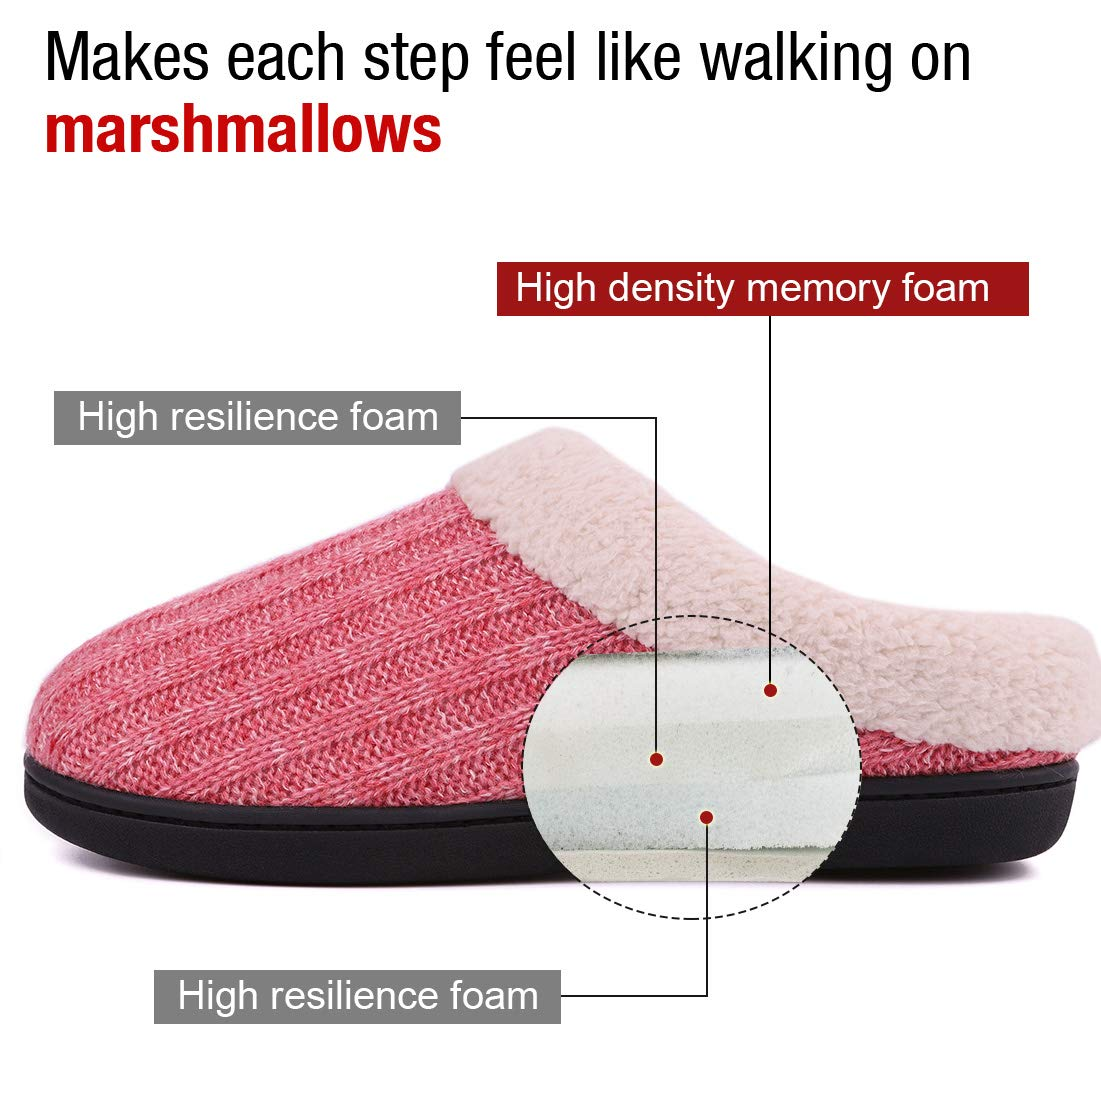 Ladies Comfy Cotton Knit Memory Foam Ballerina Slippers Light Weight Terry Cloth House Shoes w//Stretchable Heel